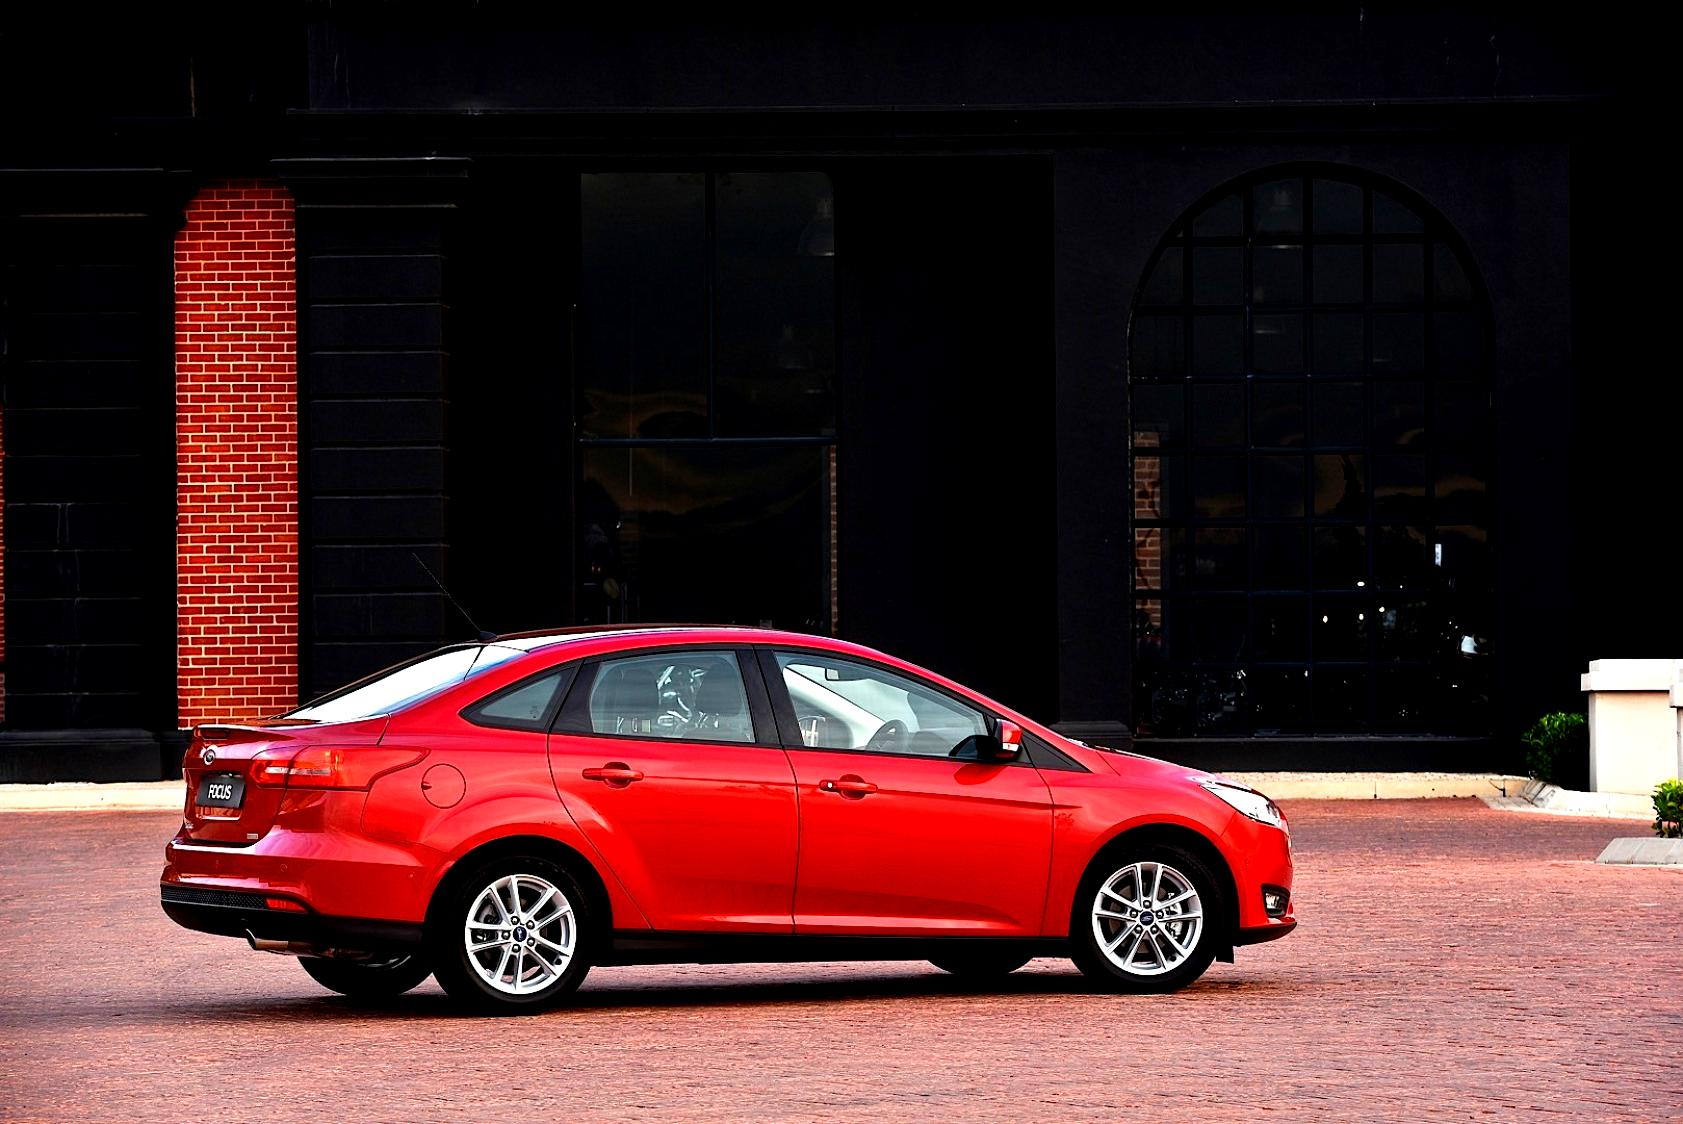 Ford Focus Sedan 2014 #47